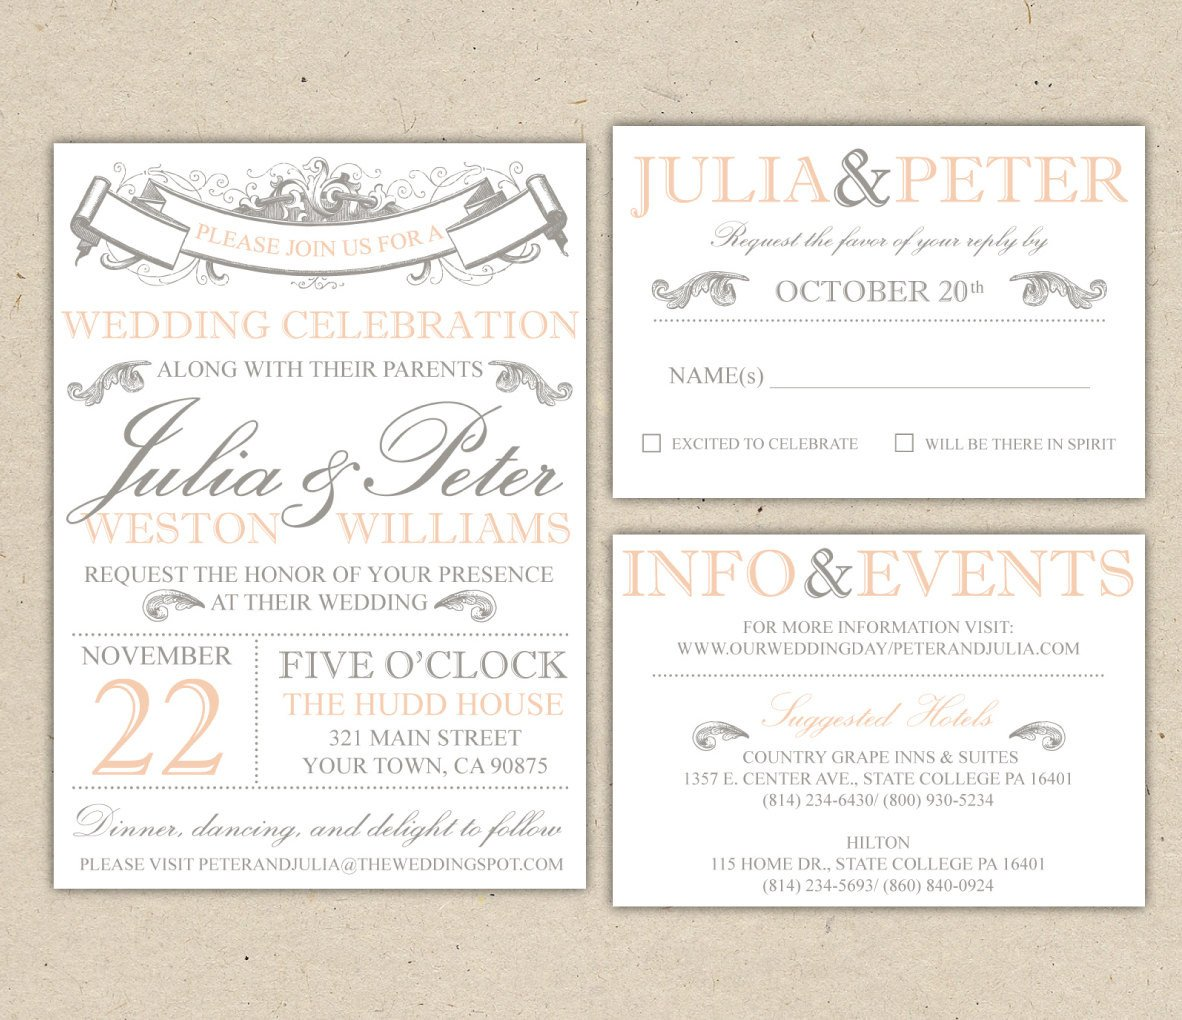 Rustic Wedding Invitation Templates Rustic Wedding Invitation Template Vintage Modern Printable